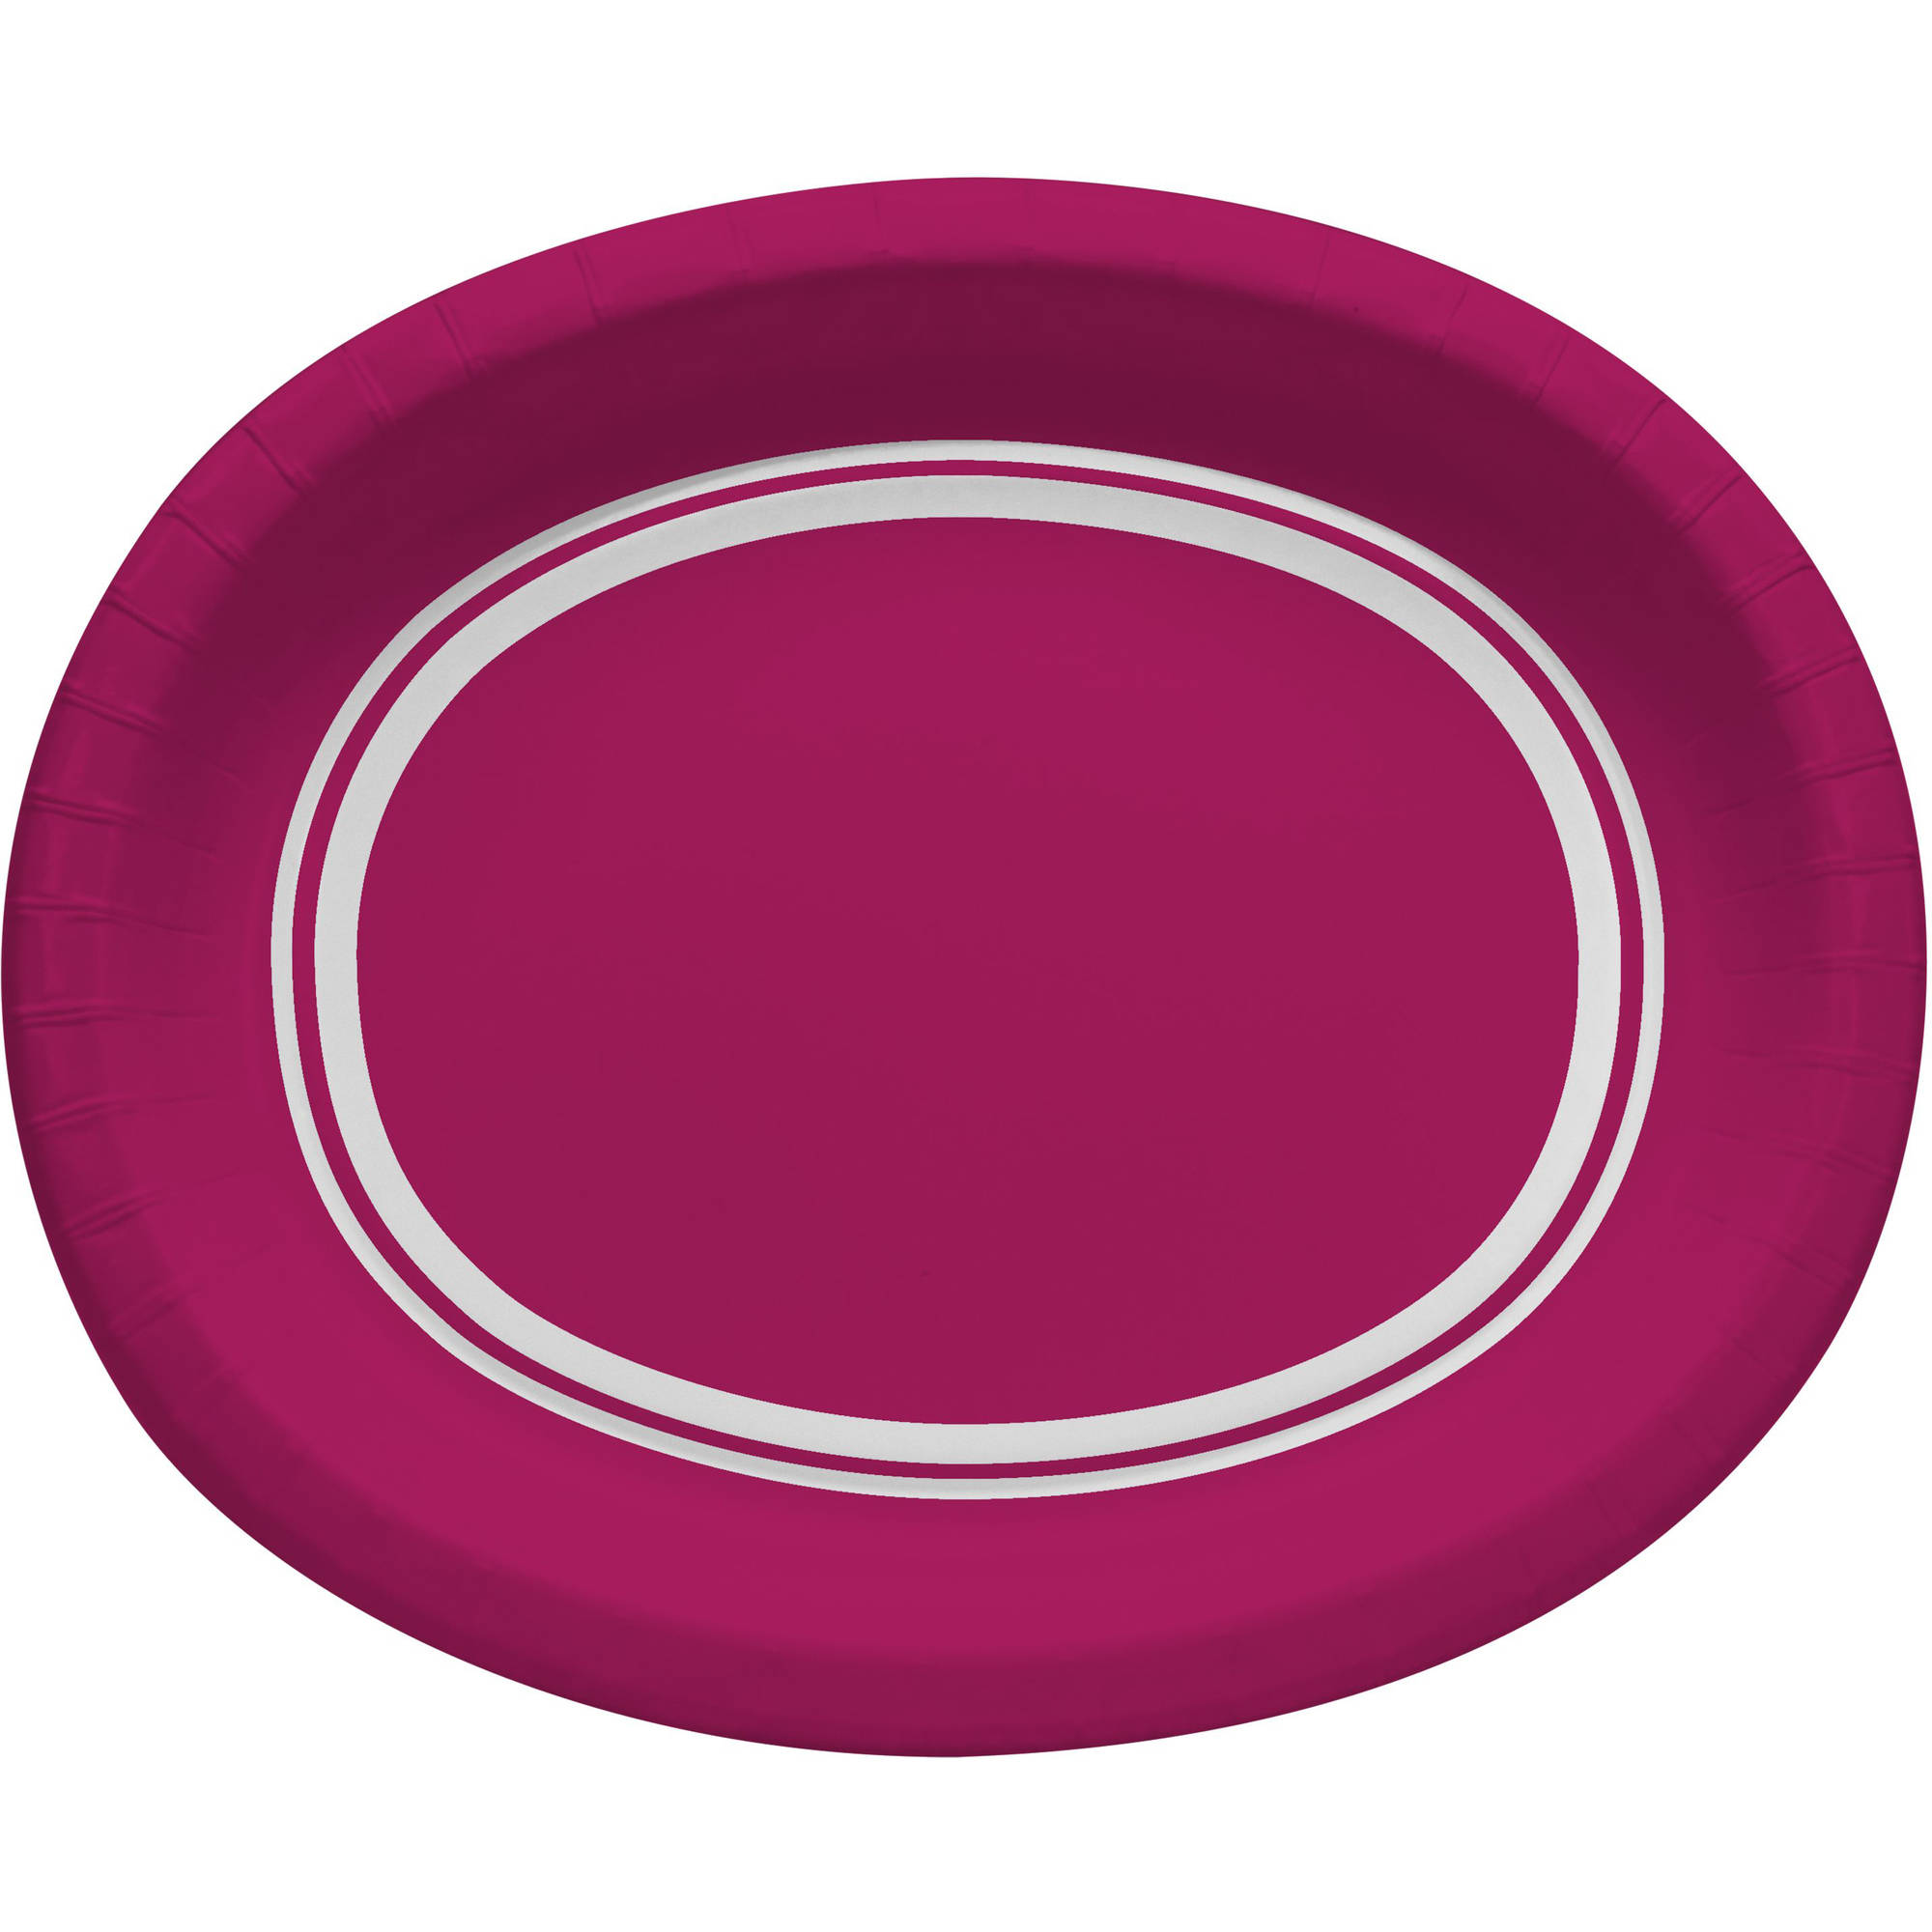 Hot Magenta Oval Plates, 10-Pack